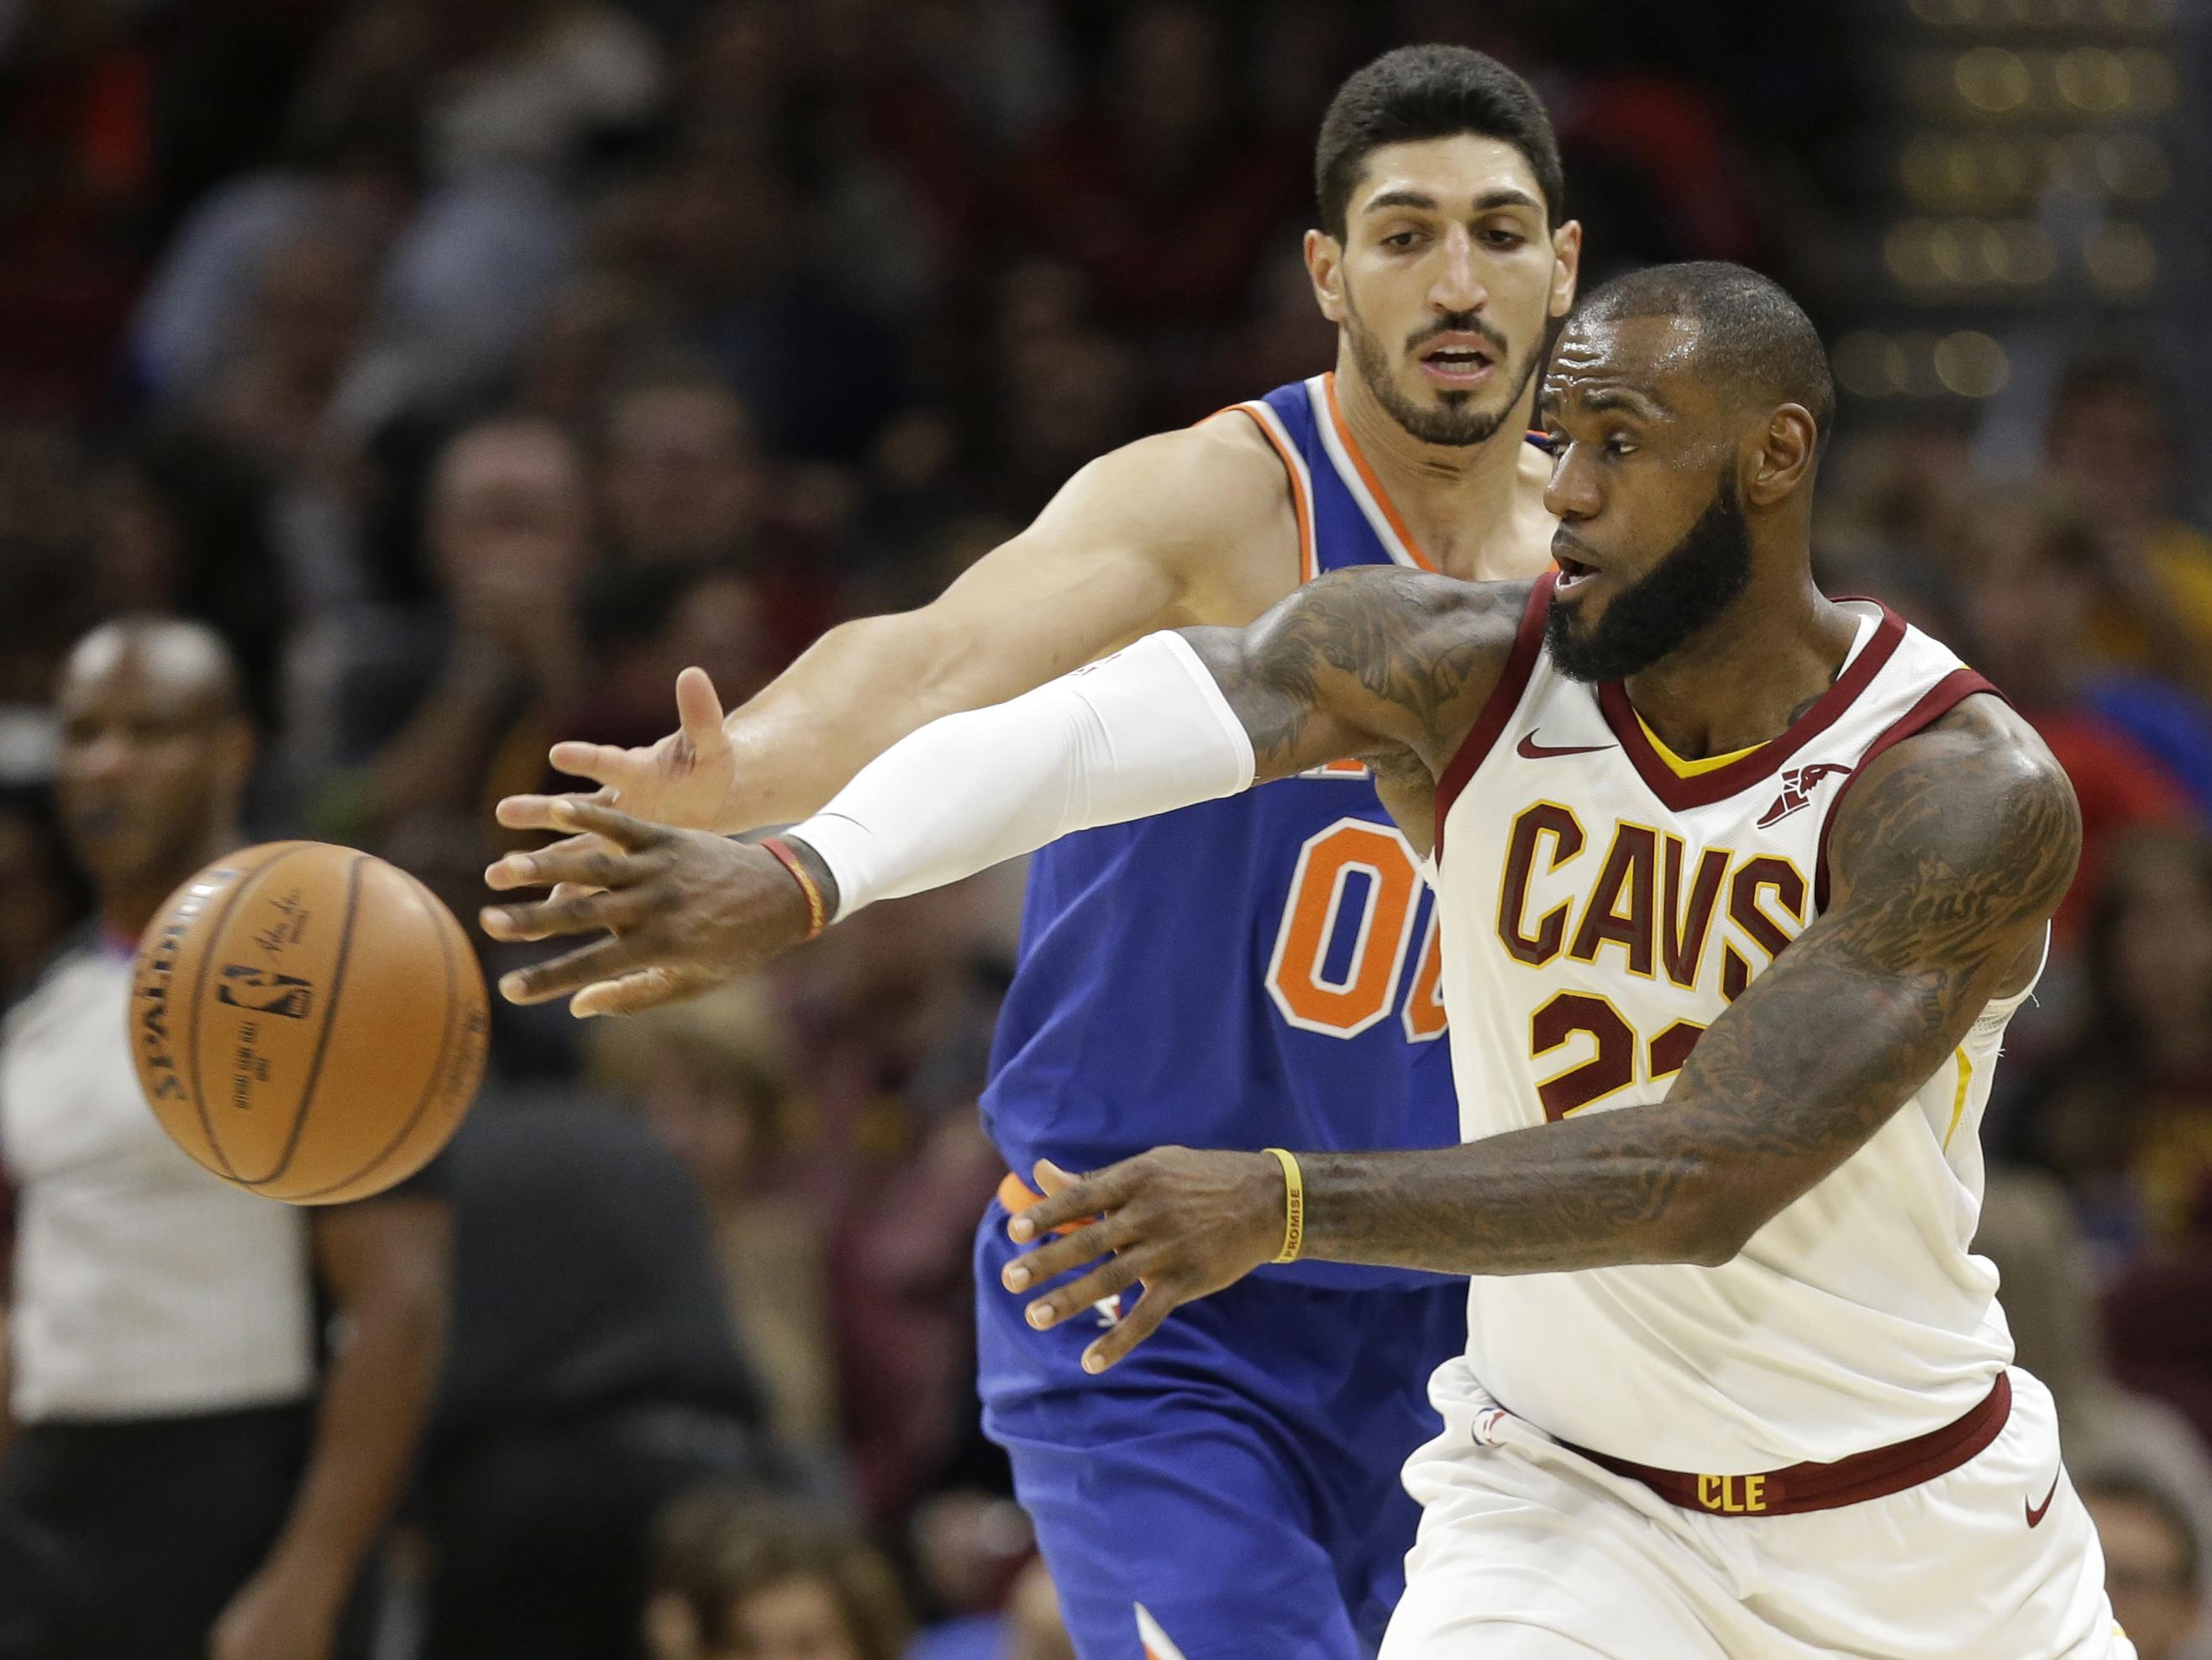 3475e46460f Enes Kanter trolls LeBron James after ejection - Washington Times